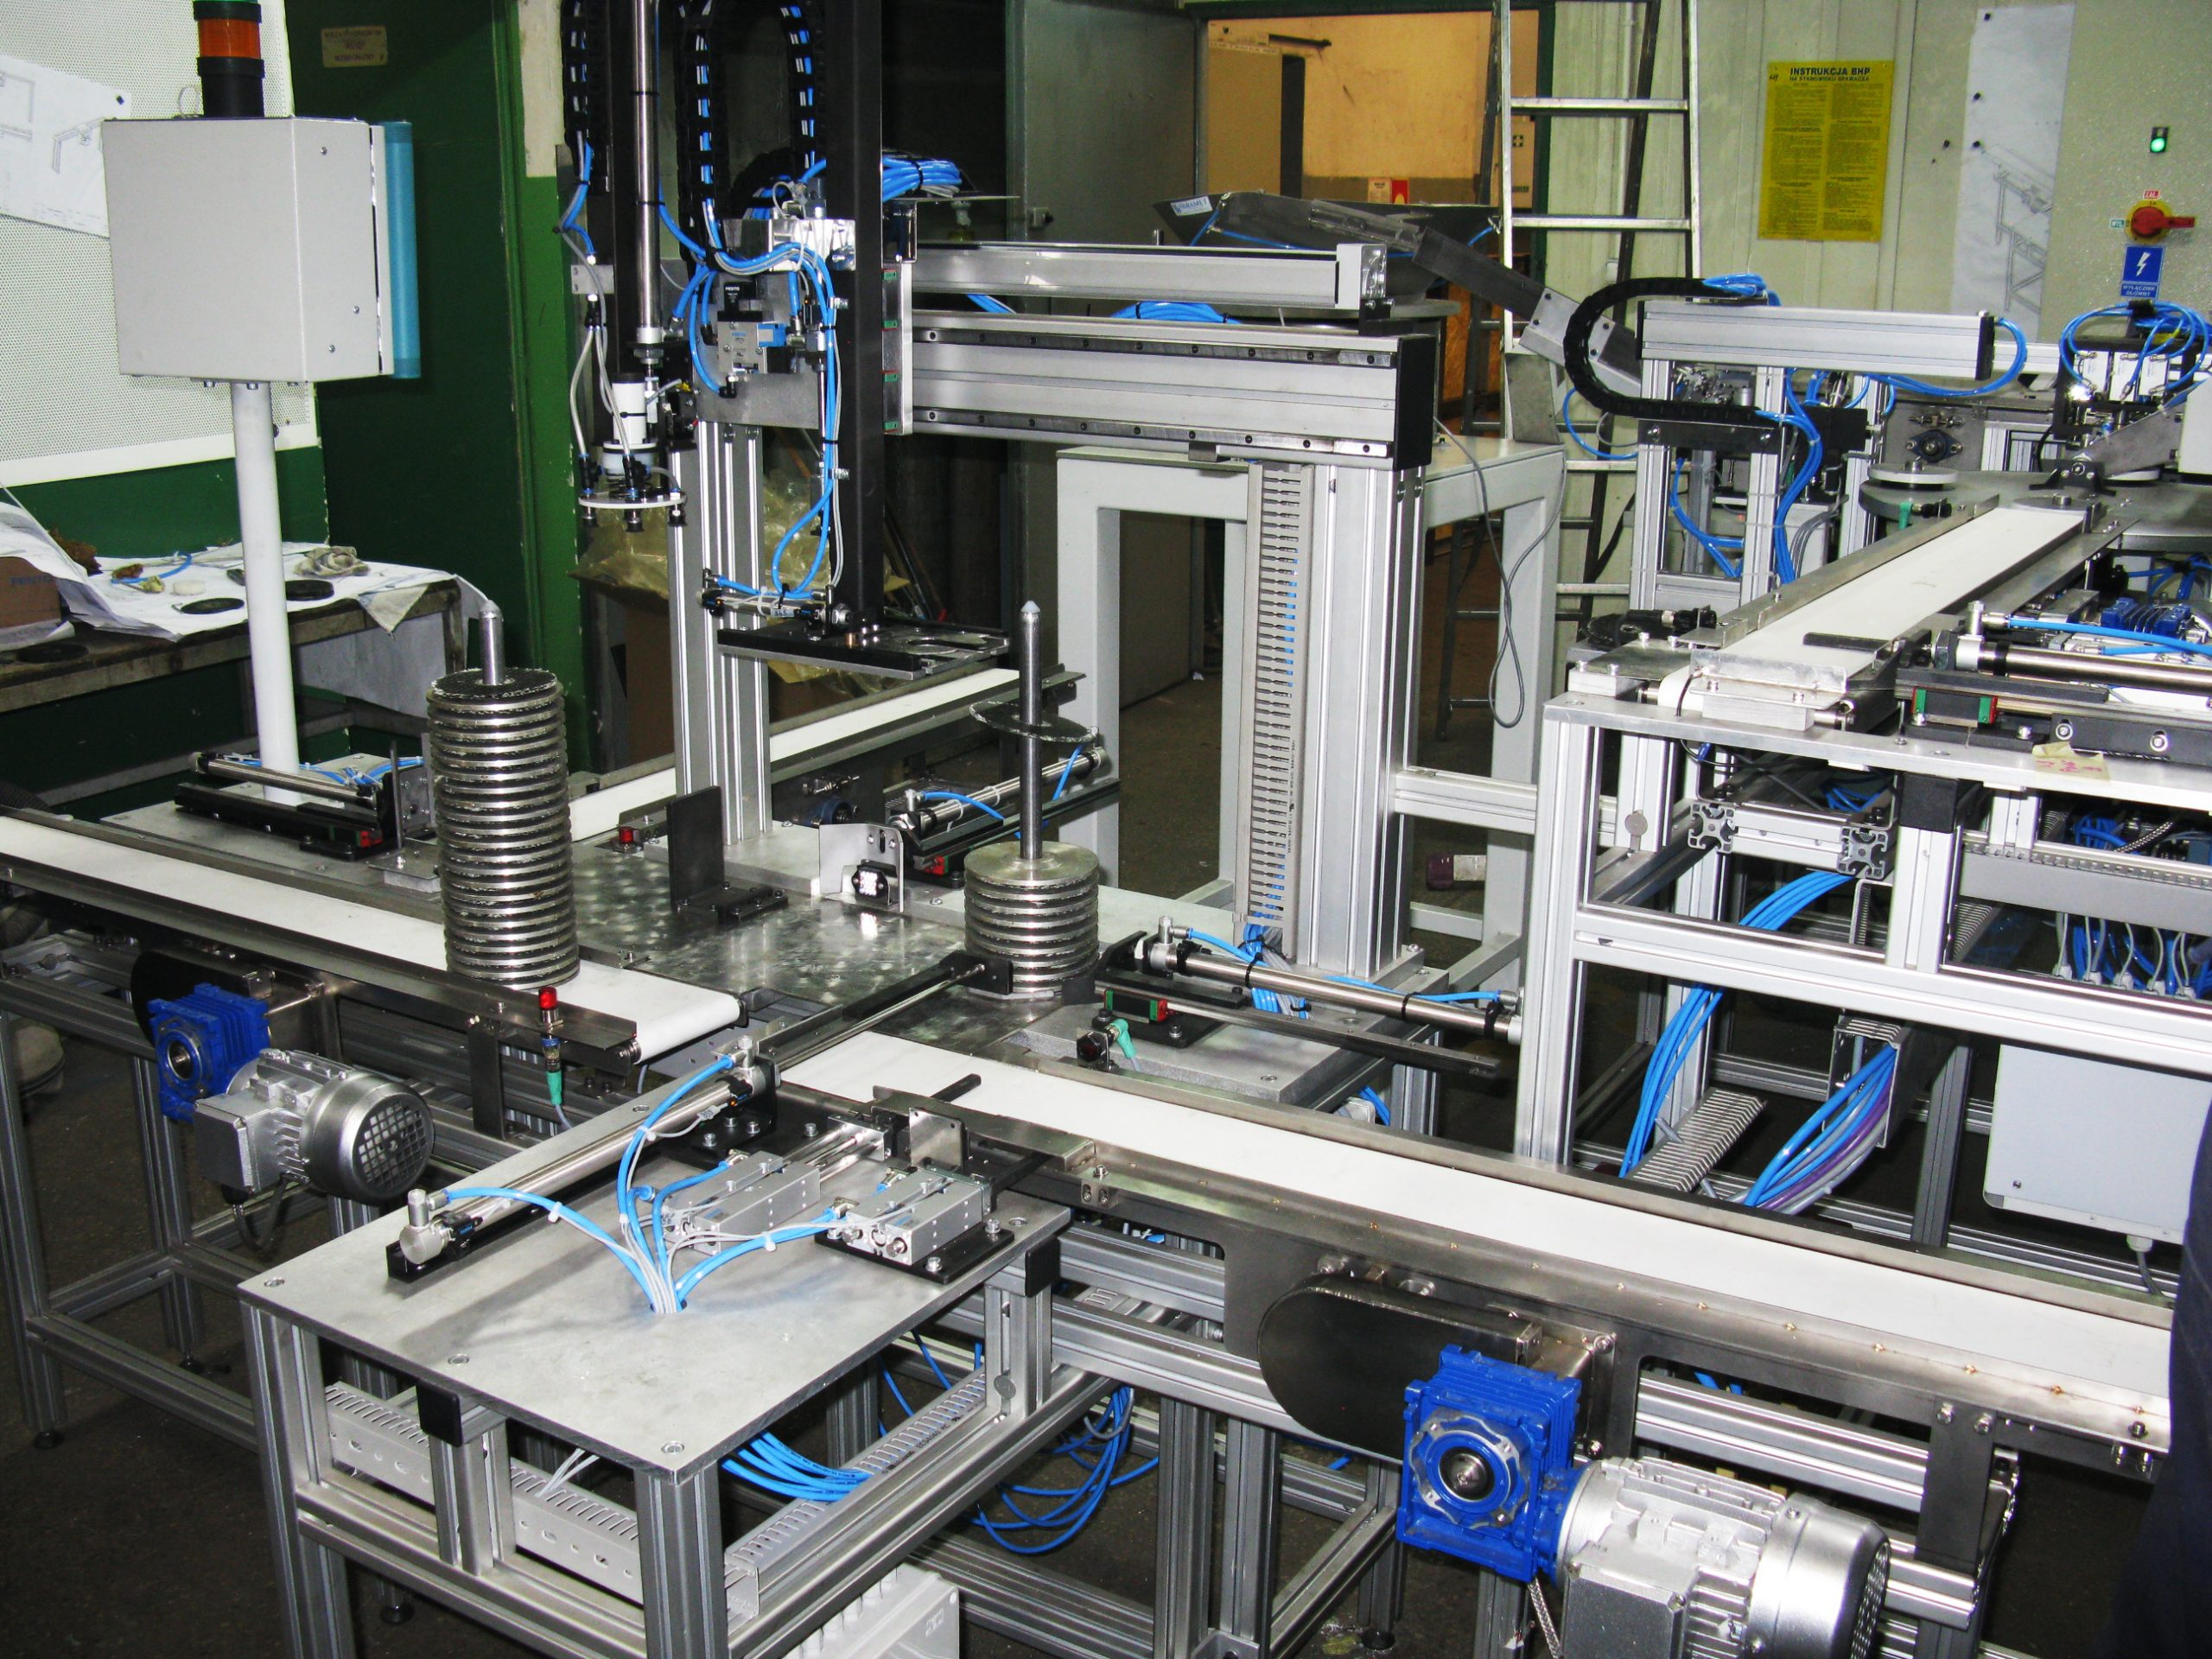 """<span  class=""""uc_style_uc_tiles_grid_image_elementor_uc_items_attribute_title"""" style=""""color:#ffffff;"""">Assembly line of grinding wheels - Retrofitting based on the SIMATIC S7-300 PLC controller. </span>"""